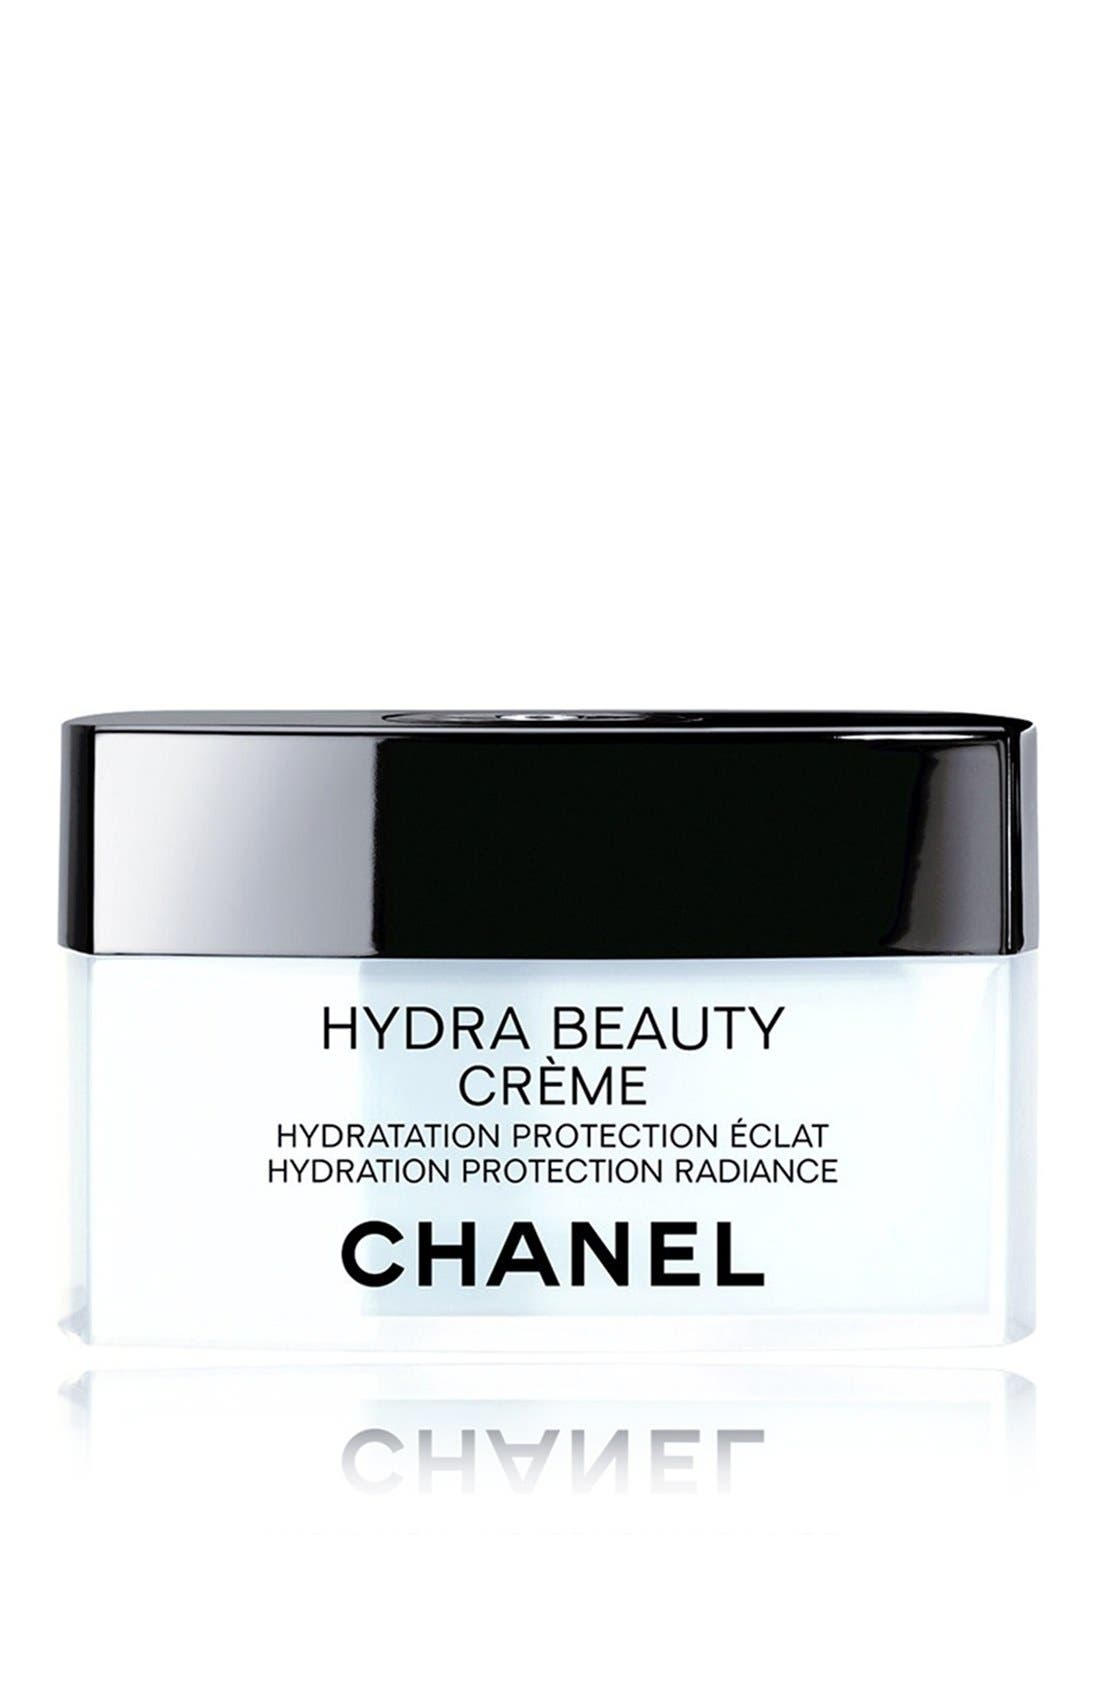 CHANEL HYDRA BEAUTY CRÈME  Hydration Protection Radiance   Nordstrom